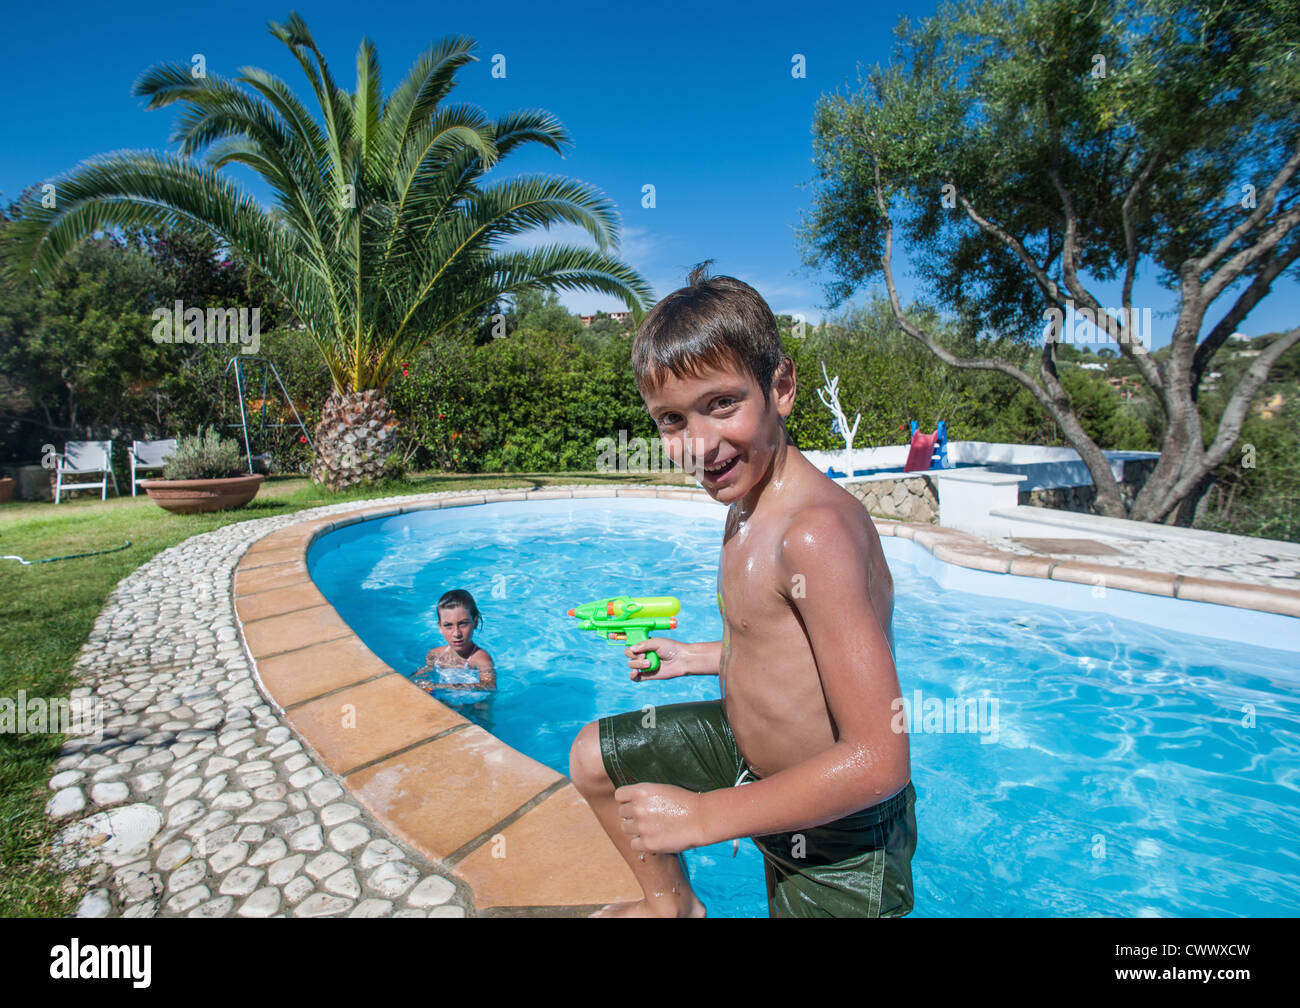 Boy climbing out of outdoor pool - Stock Image